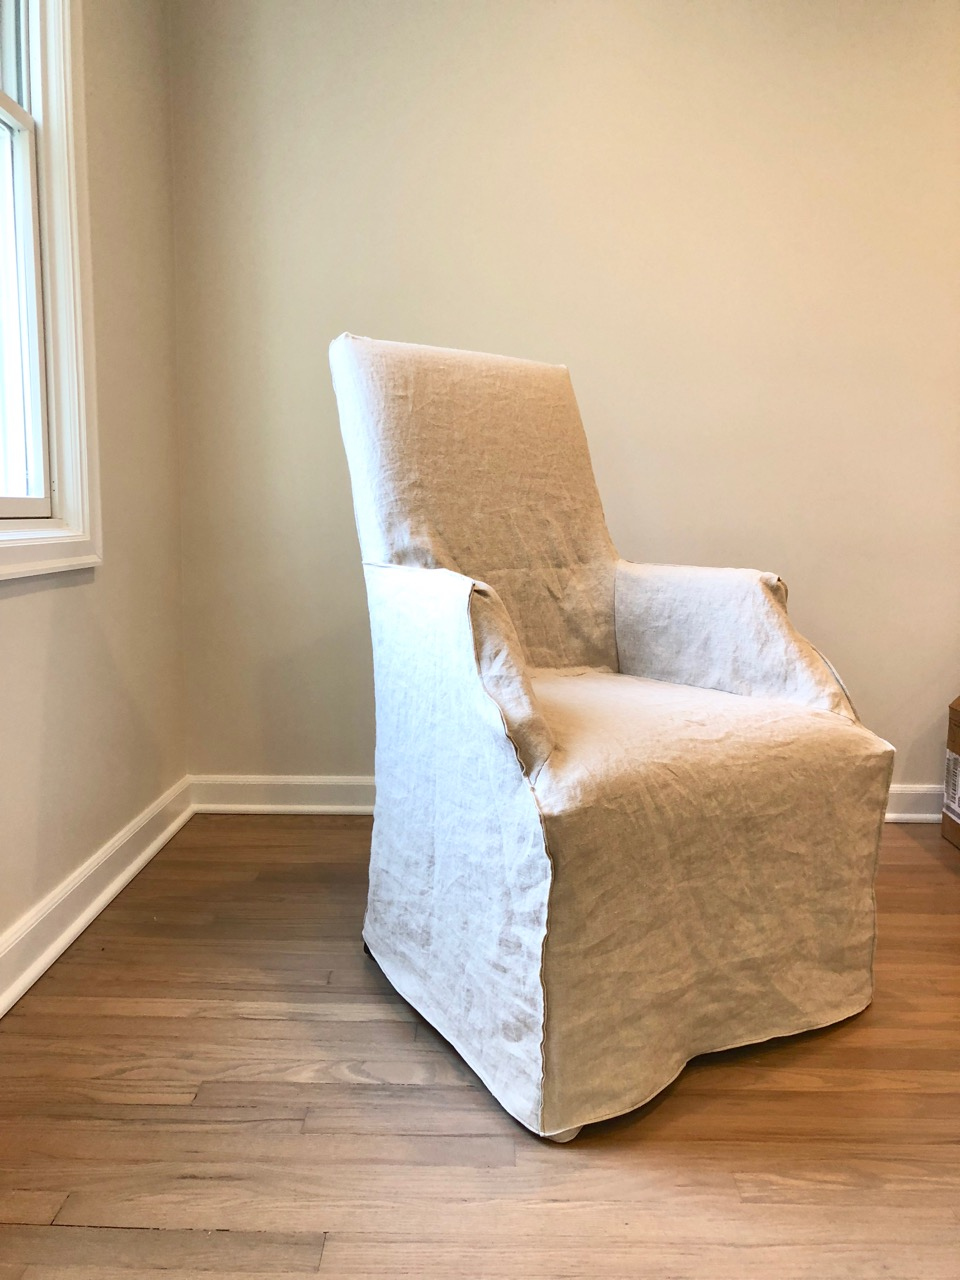 This client needed new life breathed into her Restoration Hardware chairs -- we did a custom slipcover in Otis Oatmeal from Cisco Brother's upholstery fabric line.